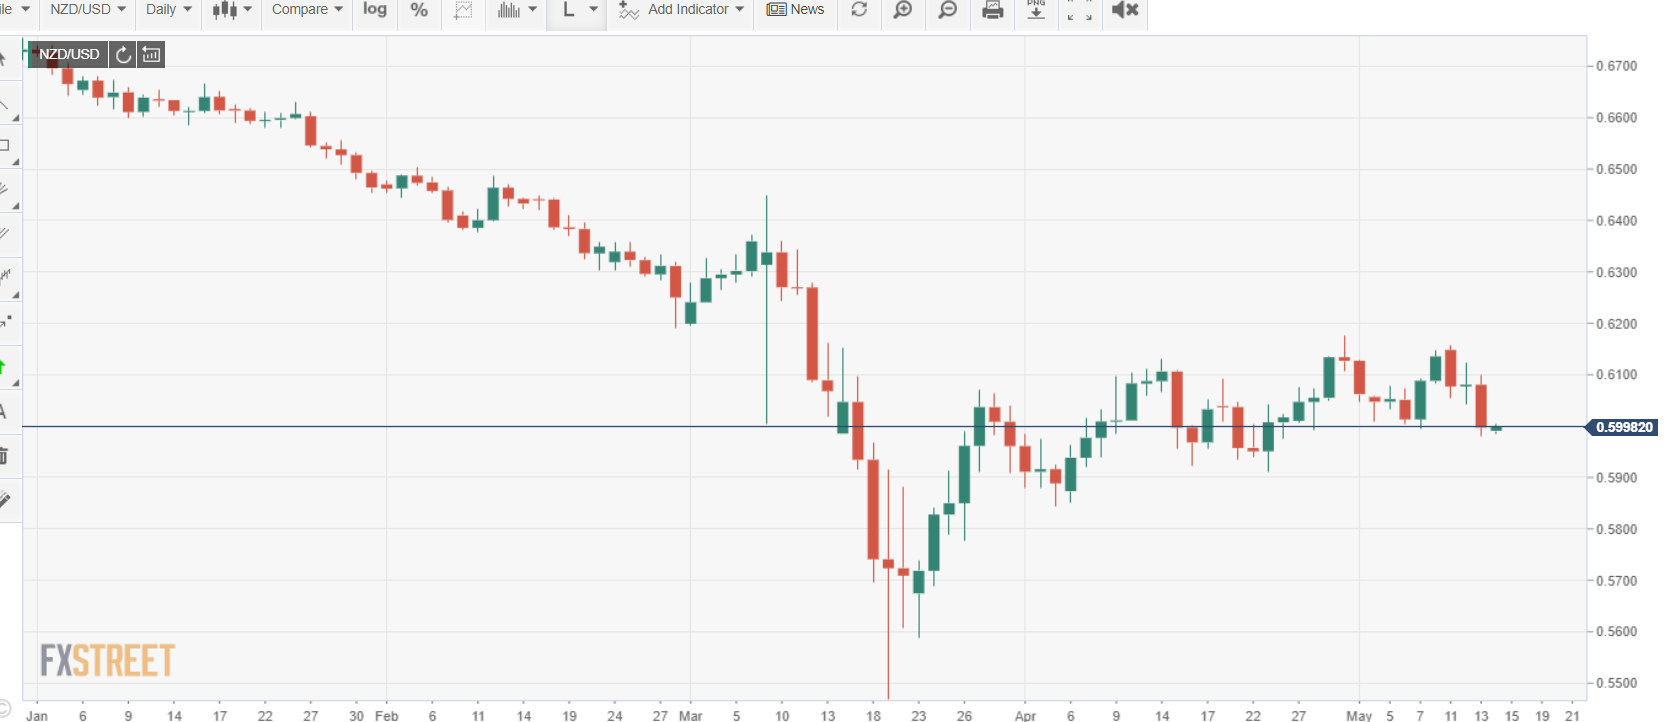 FXStreet NZDUSD Daily Chart - 14 May 2020